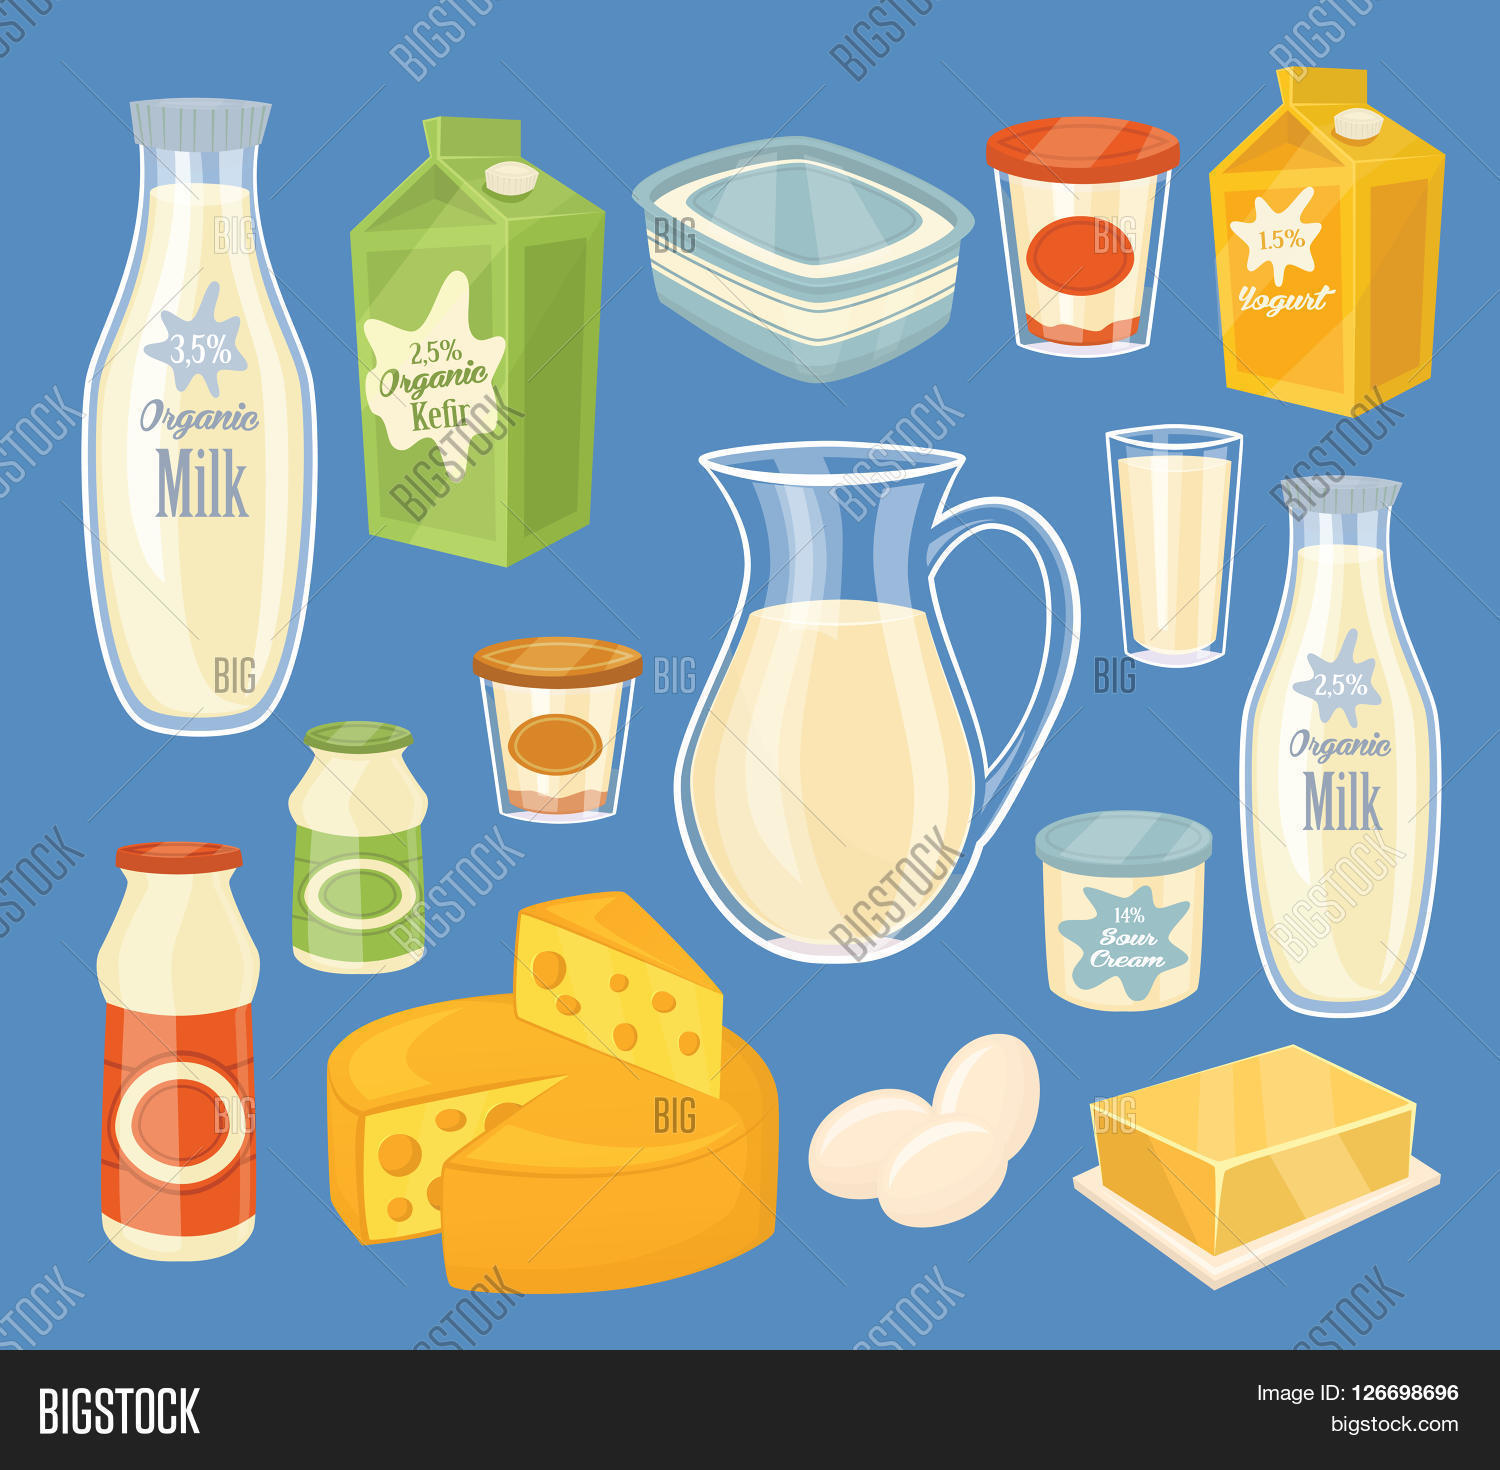 Dairy Products Image & Photo (Free Trial) | Bigstock